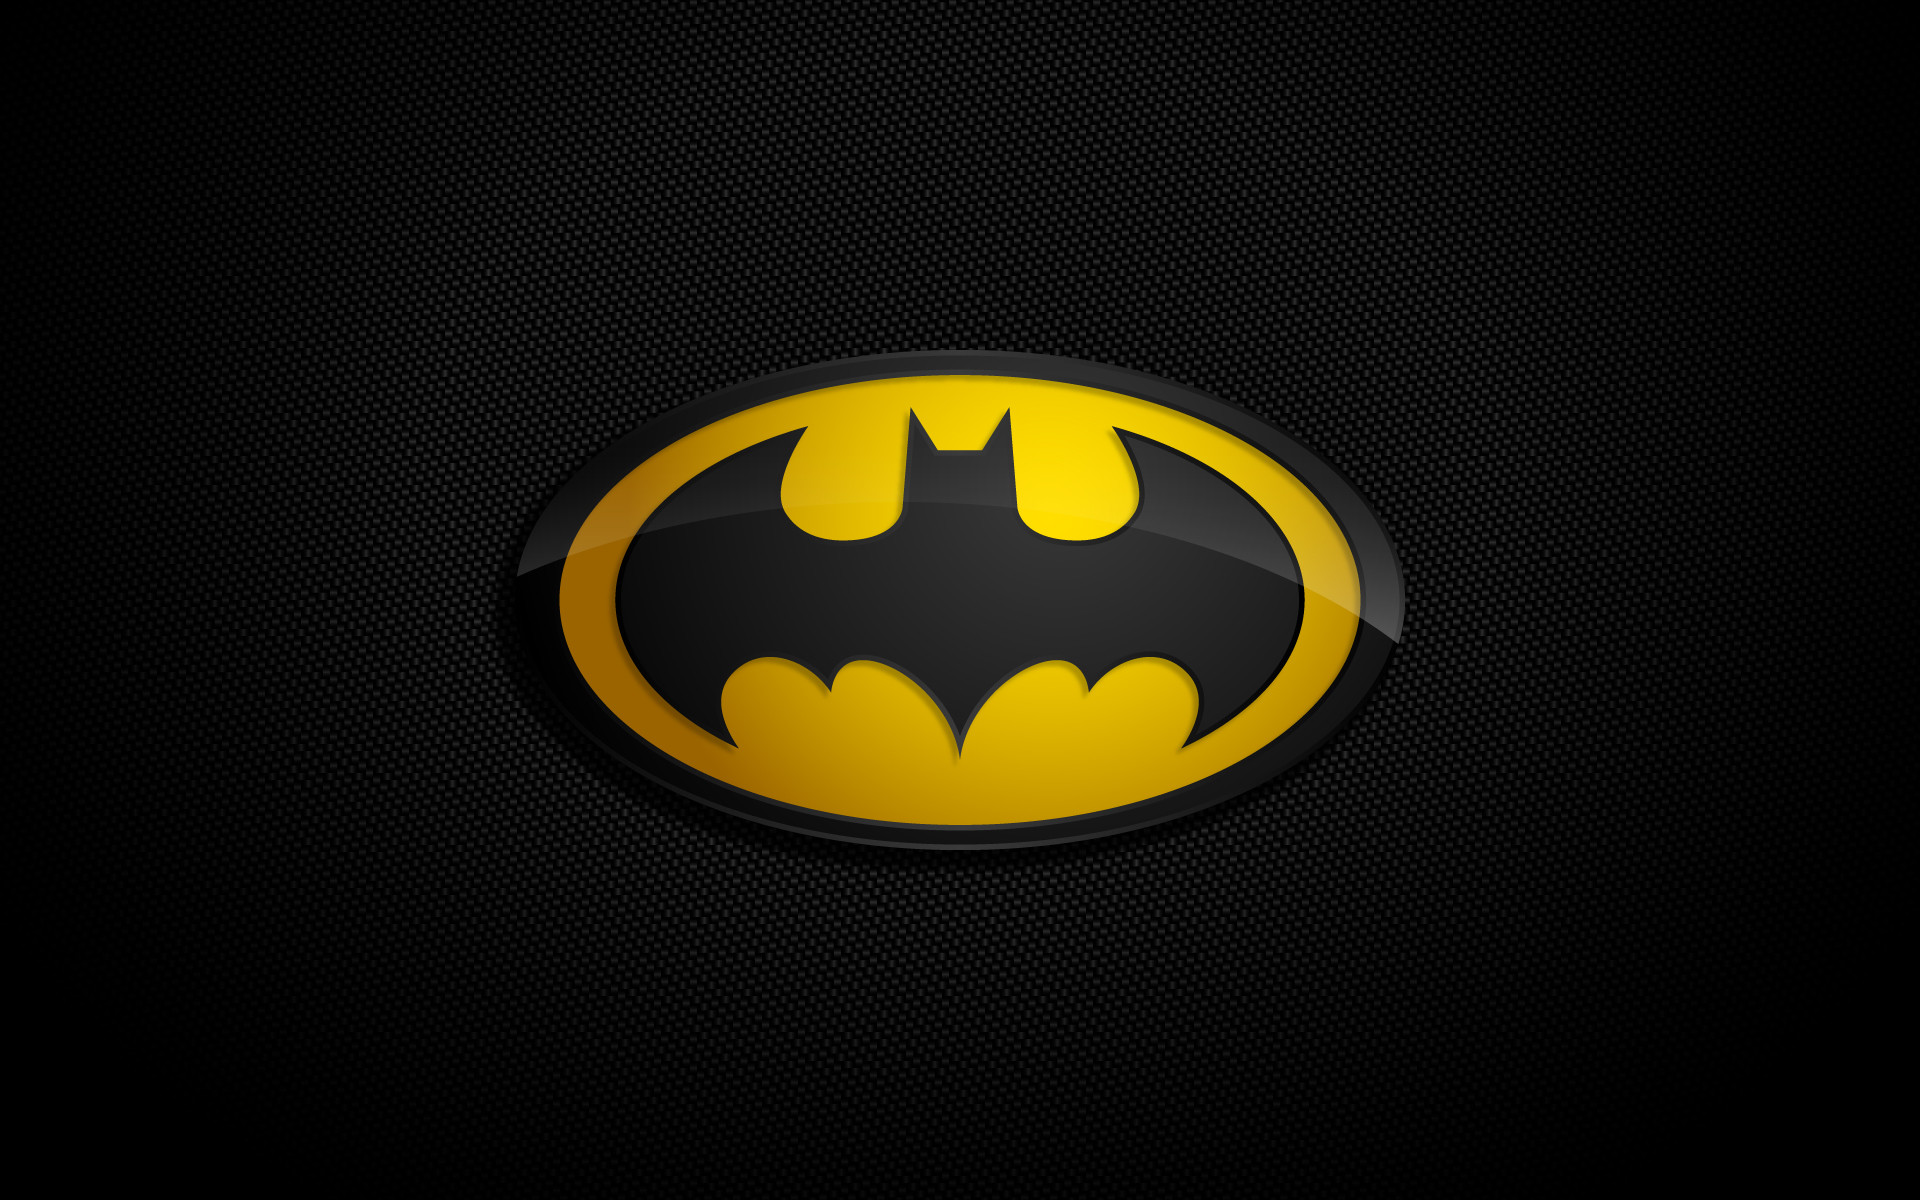 1920x1200 1086 Batman HD Wallpapers | Backgrounds - Wallpaper Abyss